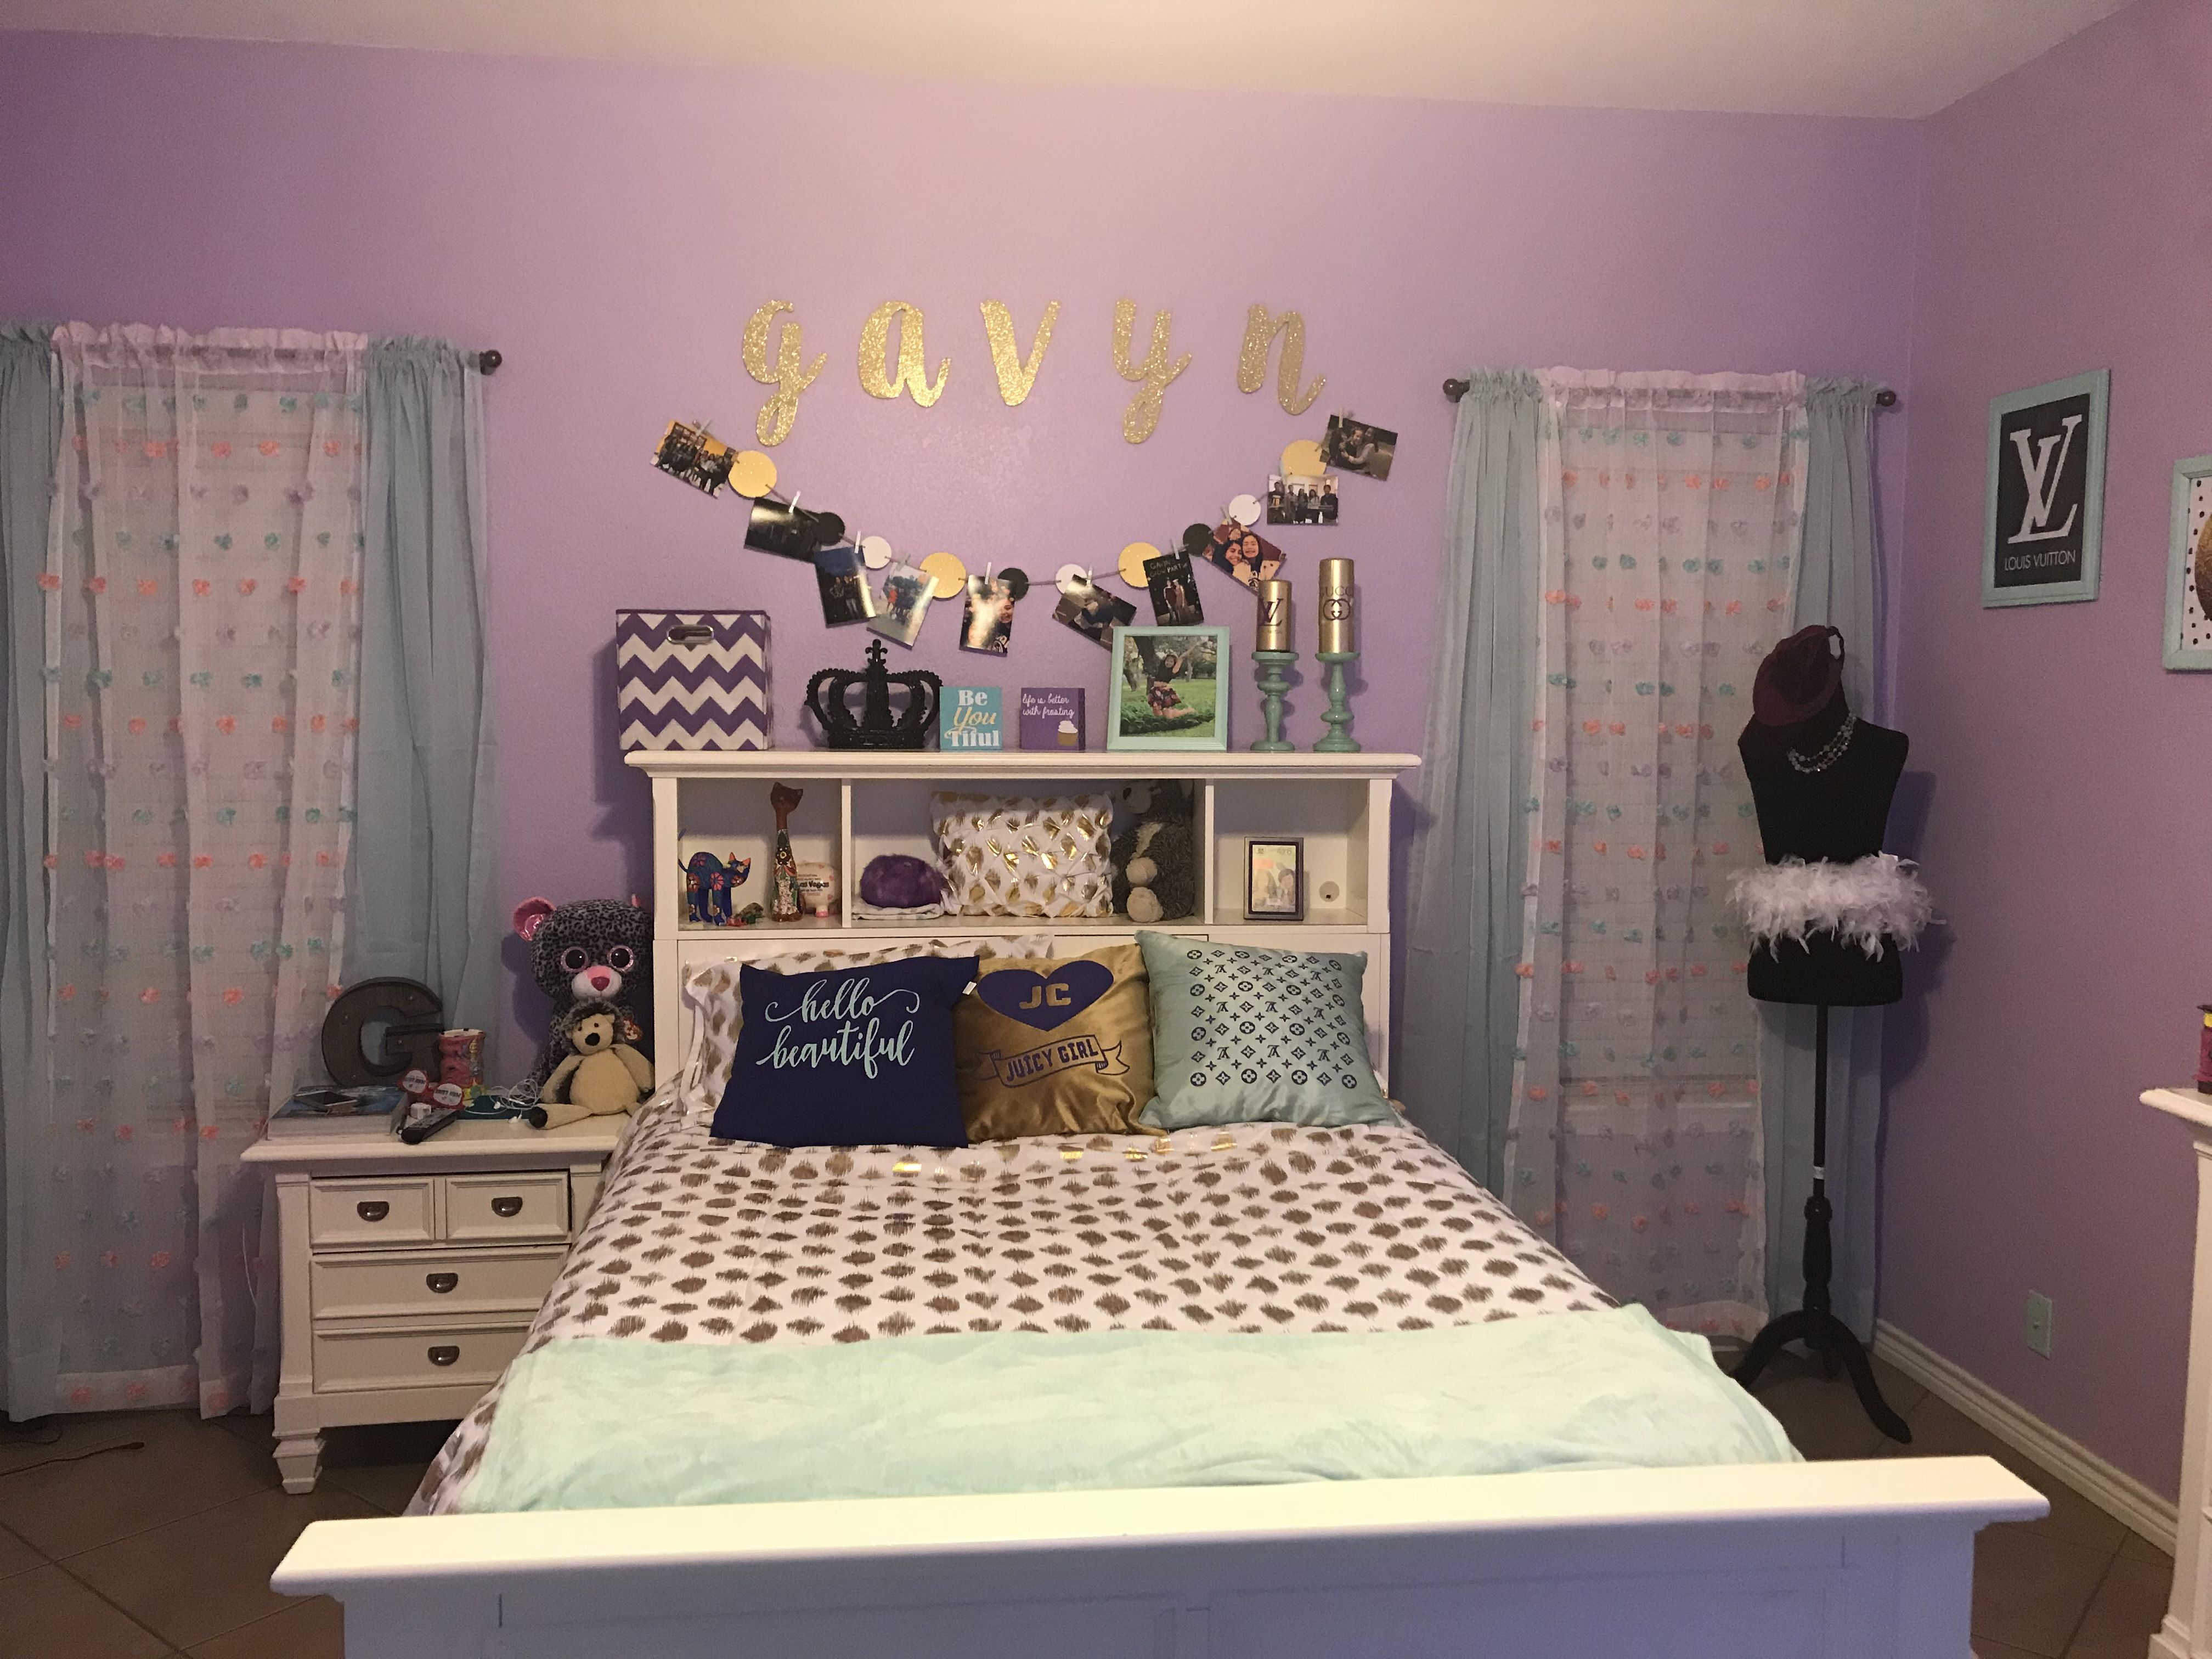 Teen girl bedroom colors lavender, purple, gold and mint